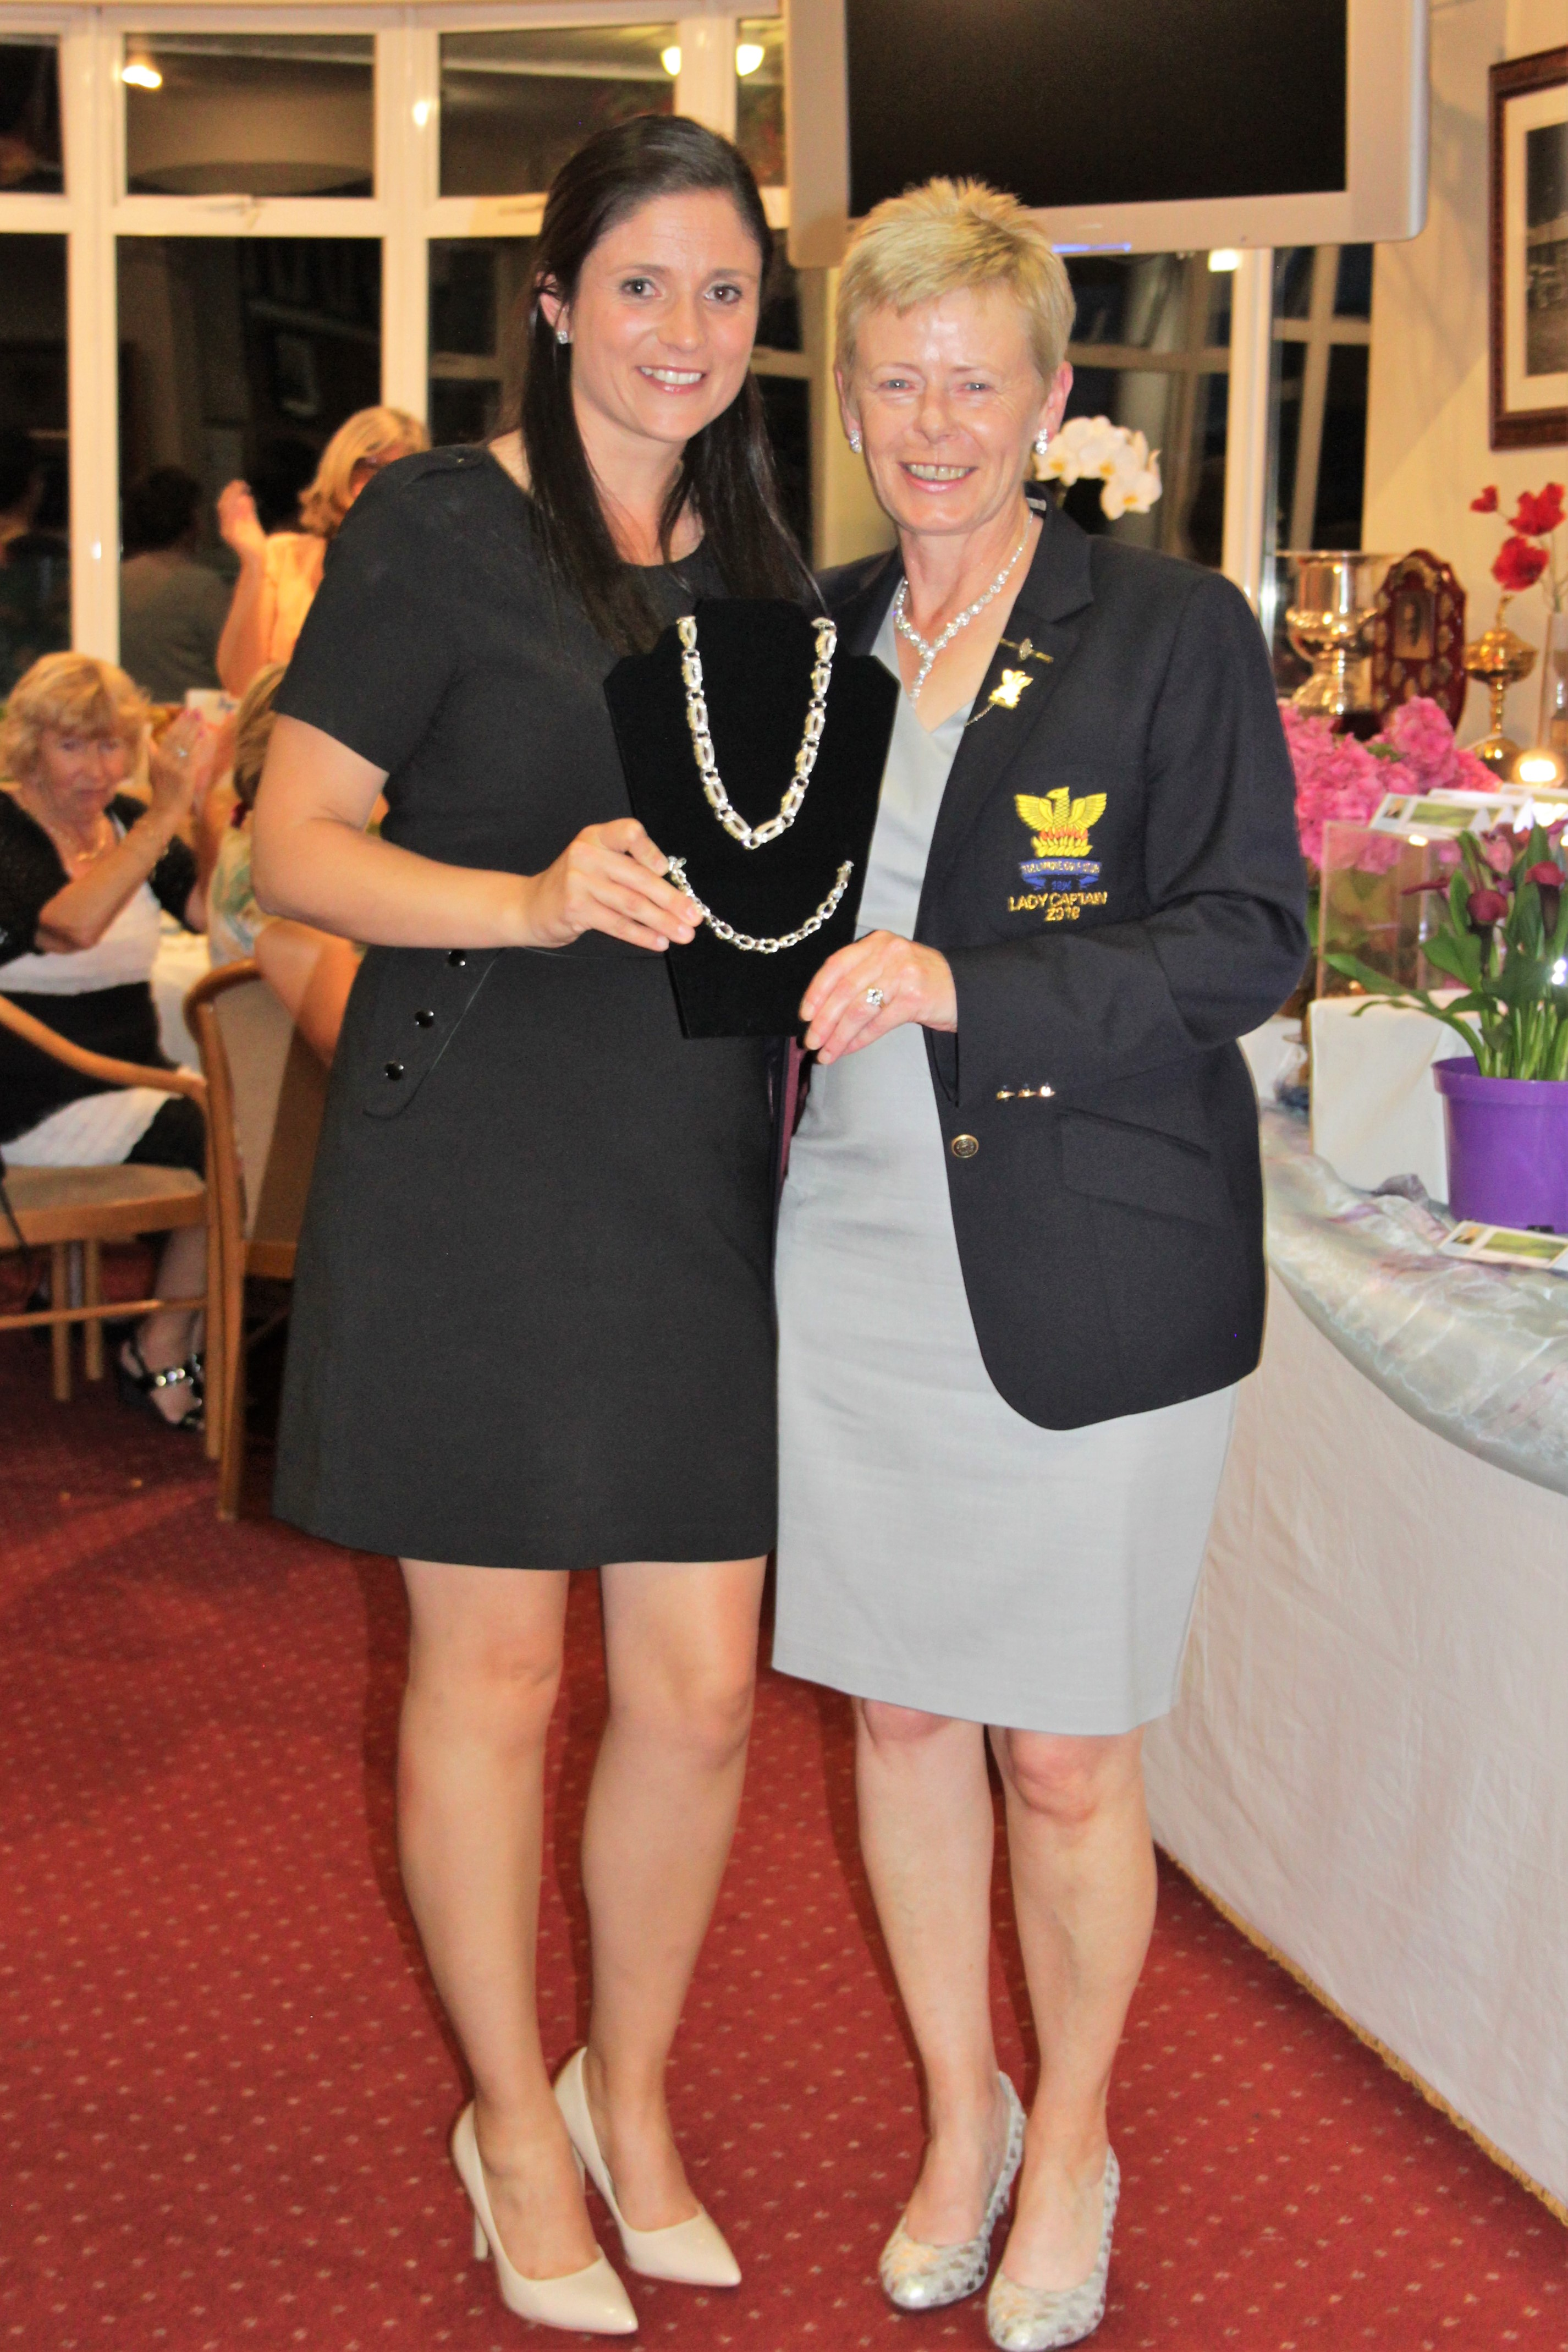 Una Marsden winner with Lady Captain Stephanie McNiff